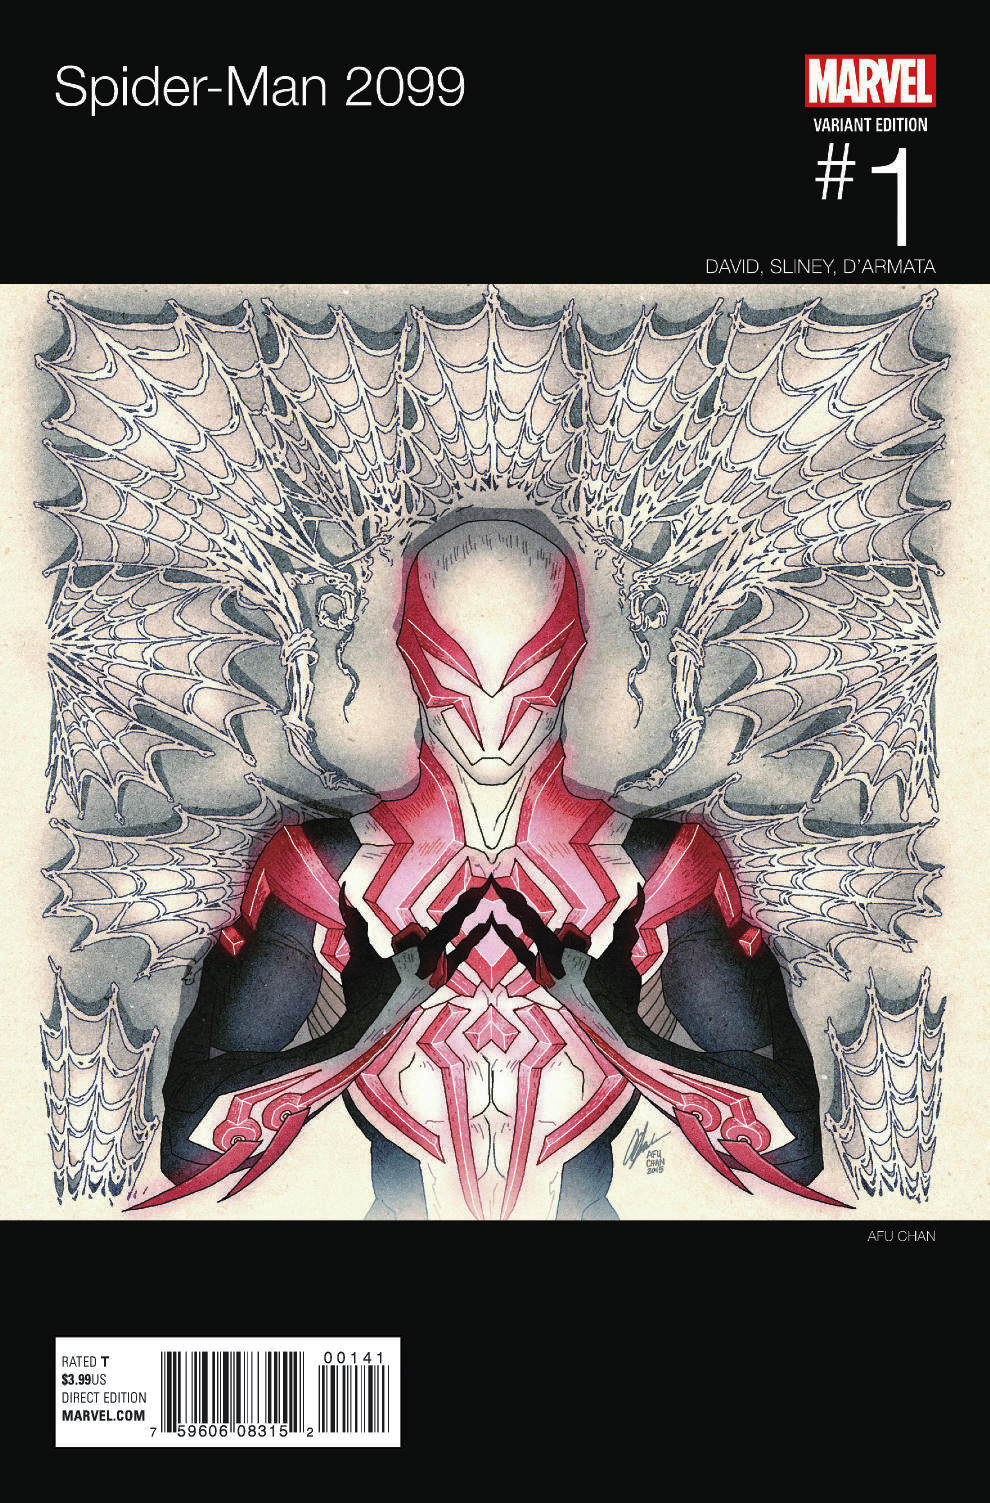 First Look at New Spider-Man 2099